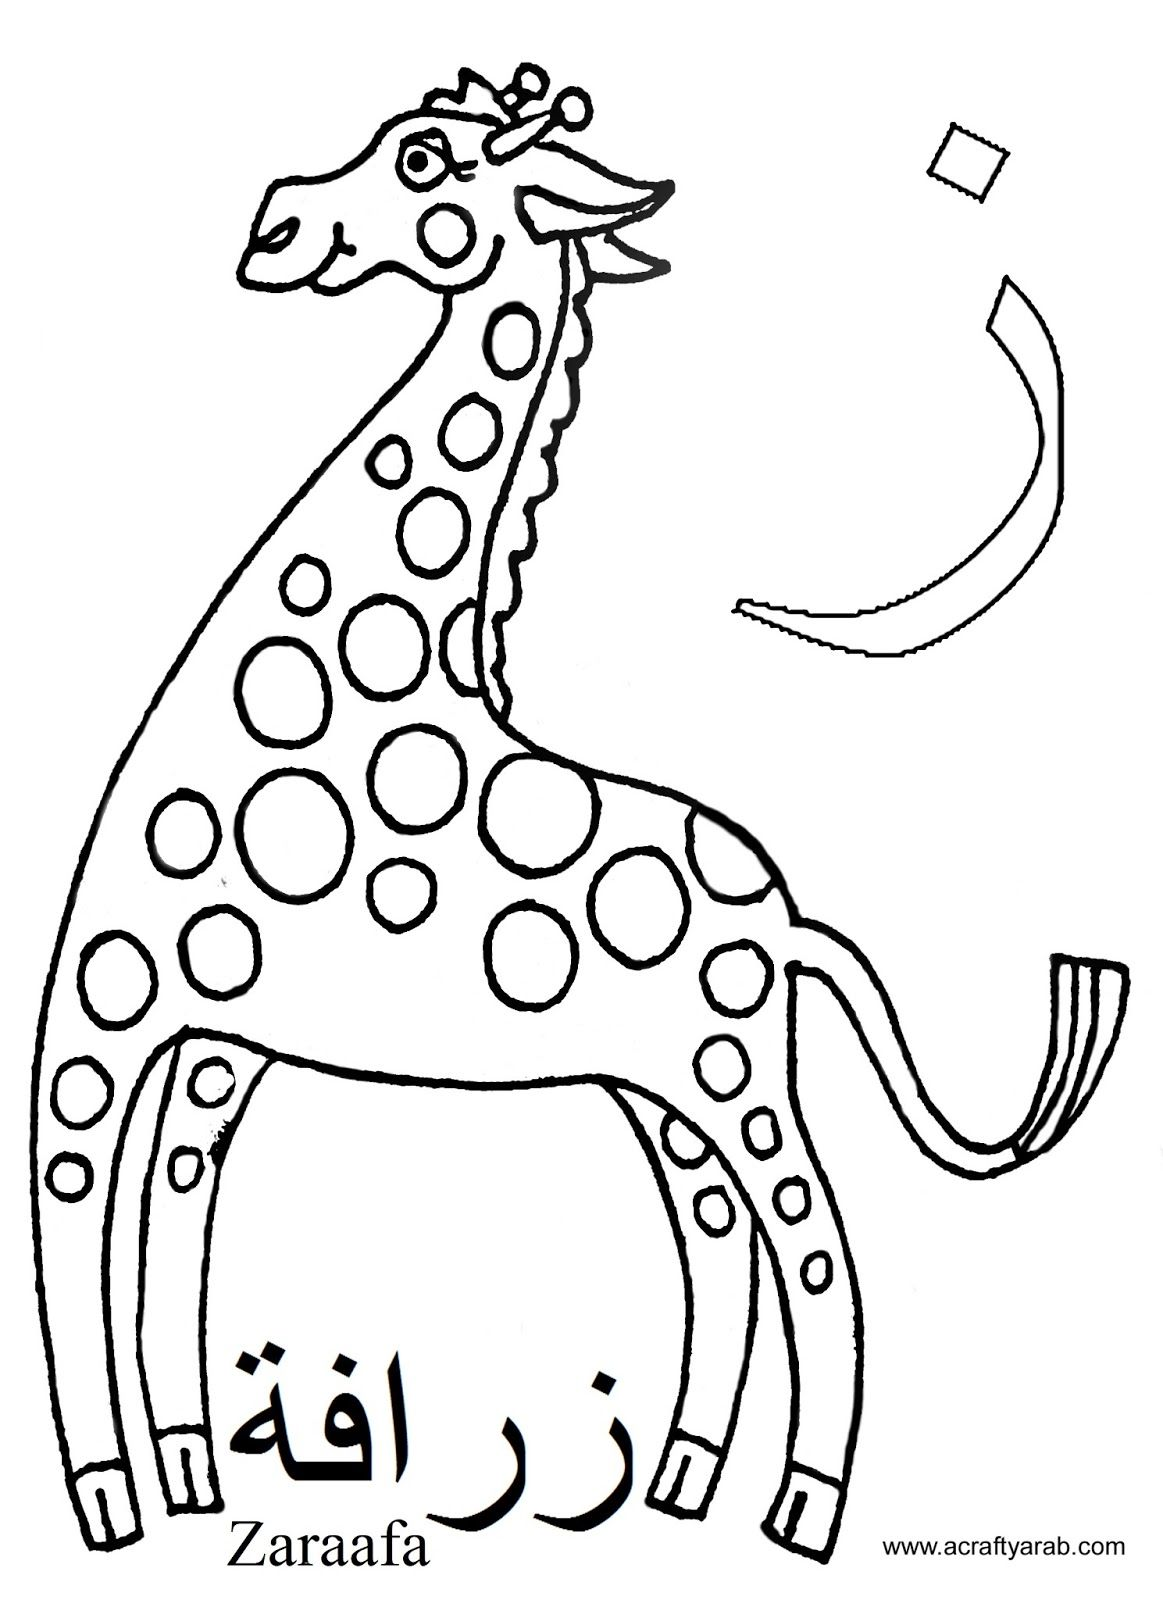 Arabic Alphabet Coloring Pages Yn Is For Zaraafa With